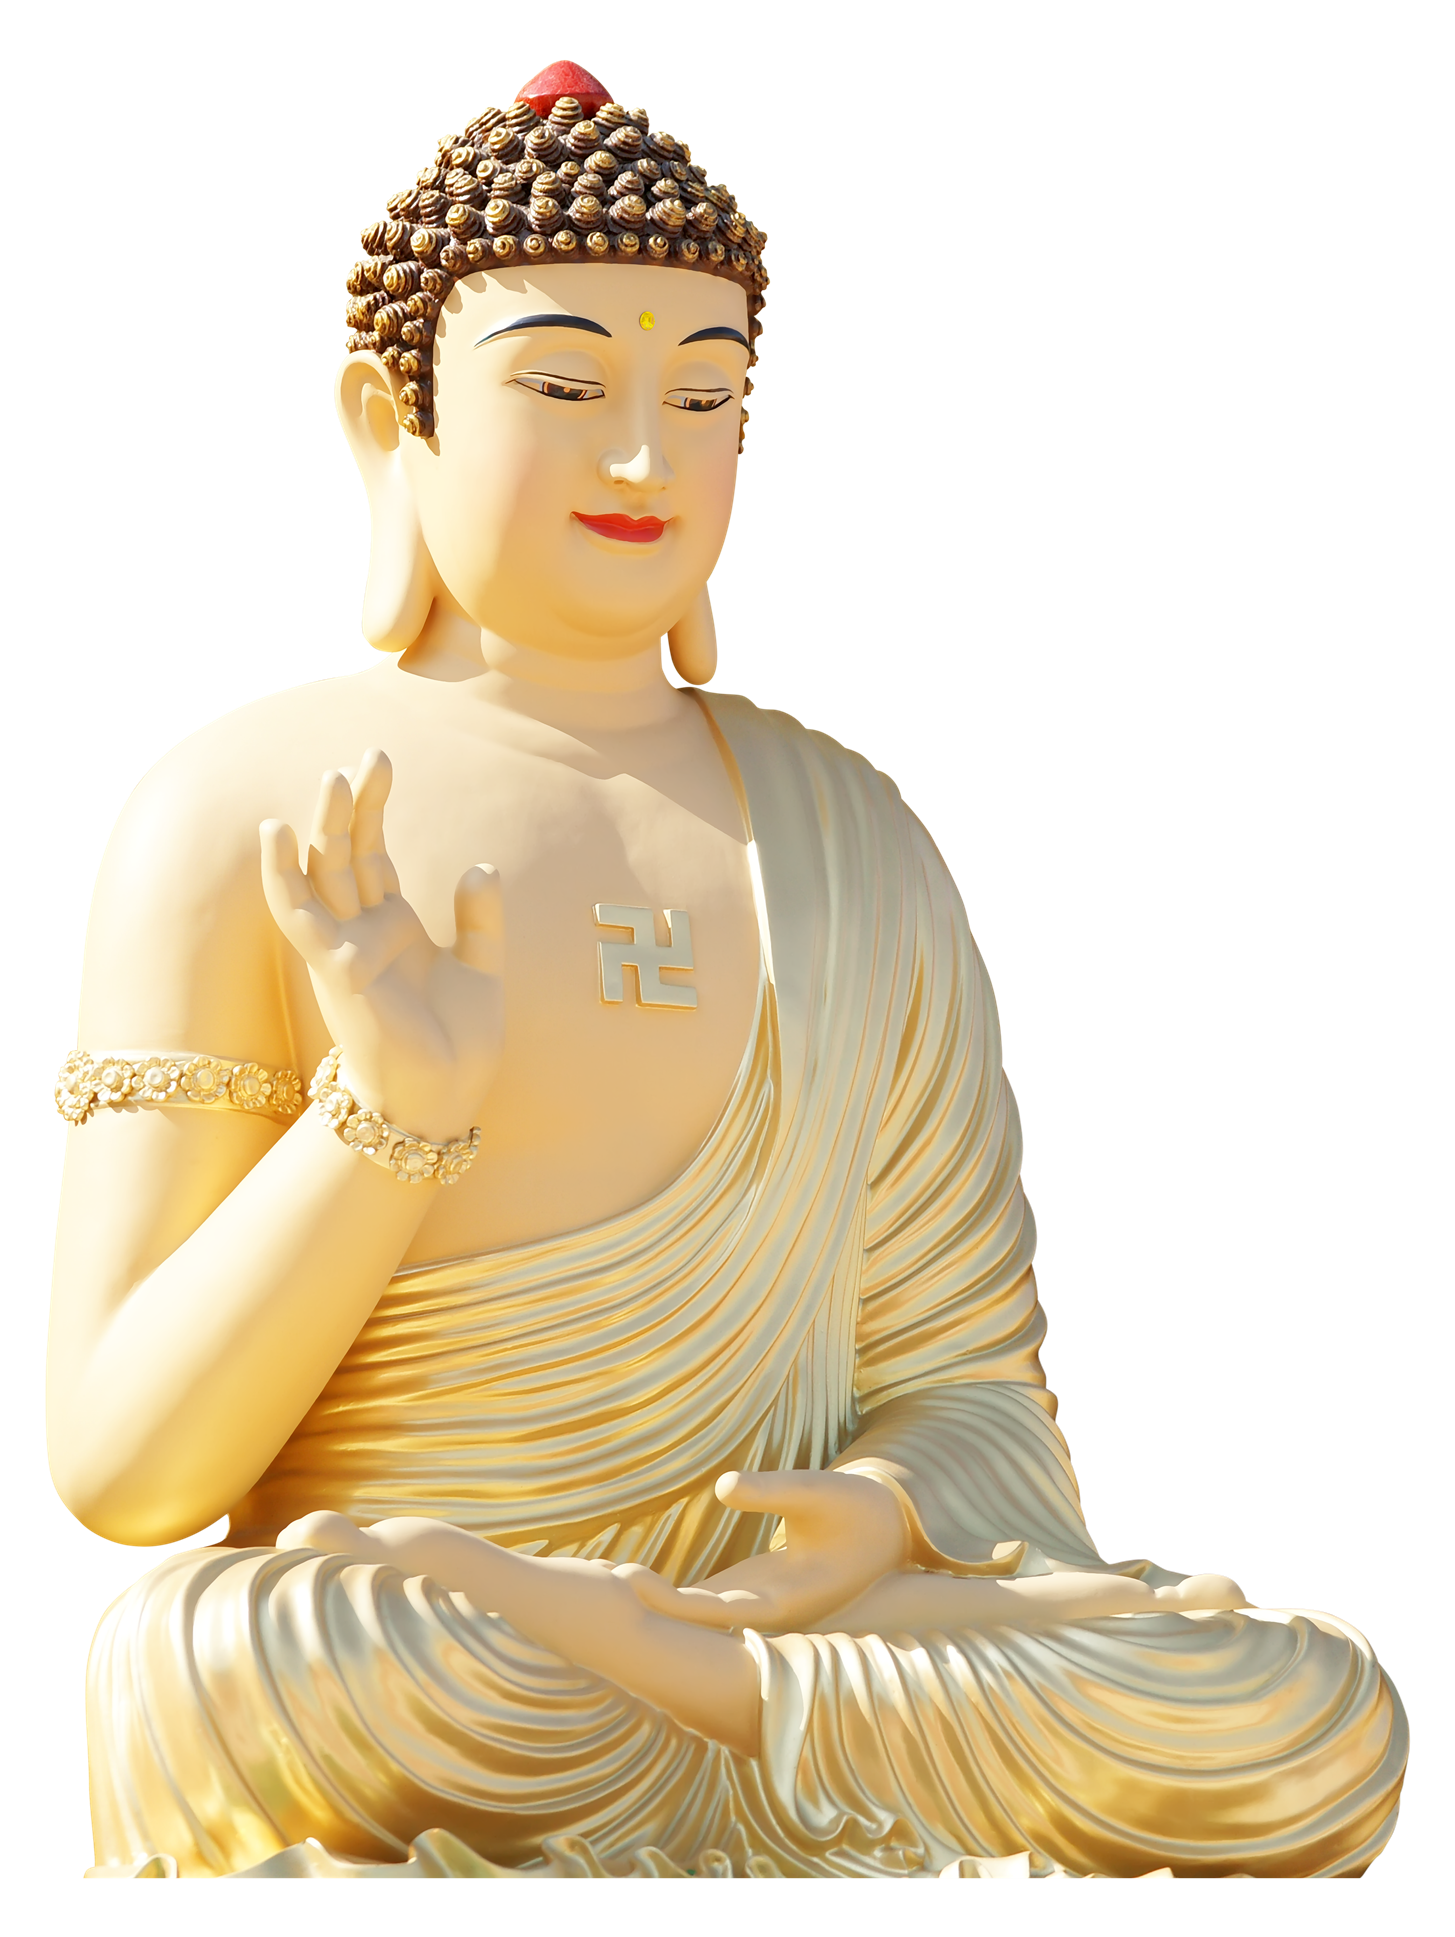 Buddha clipart clear. Download transparent hq png